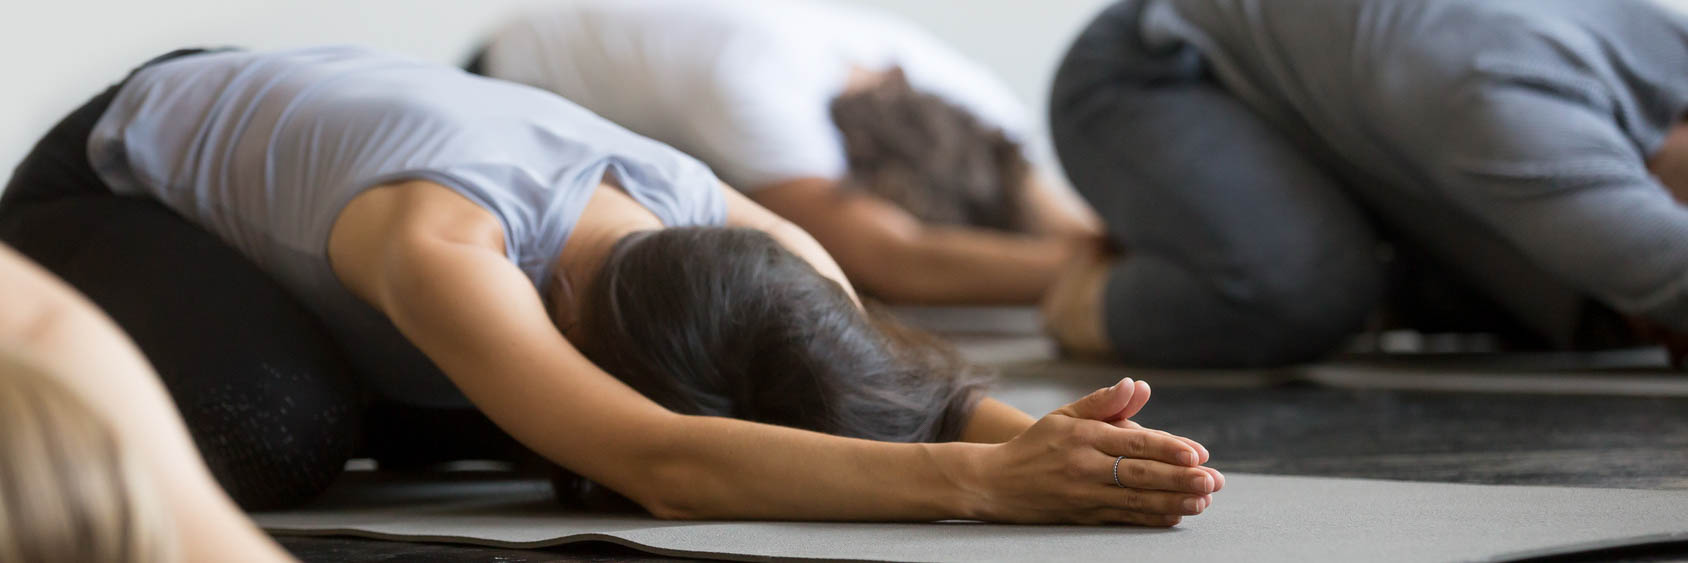 Yoga in Neuss für alle